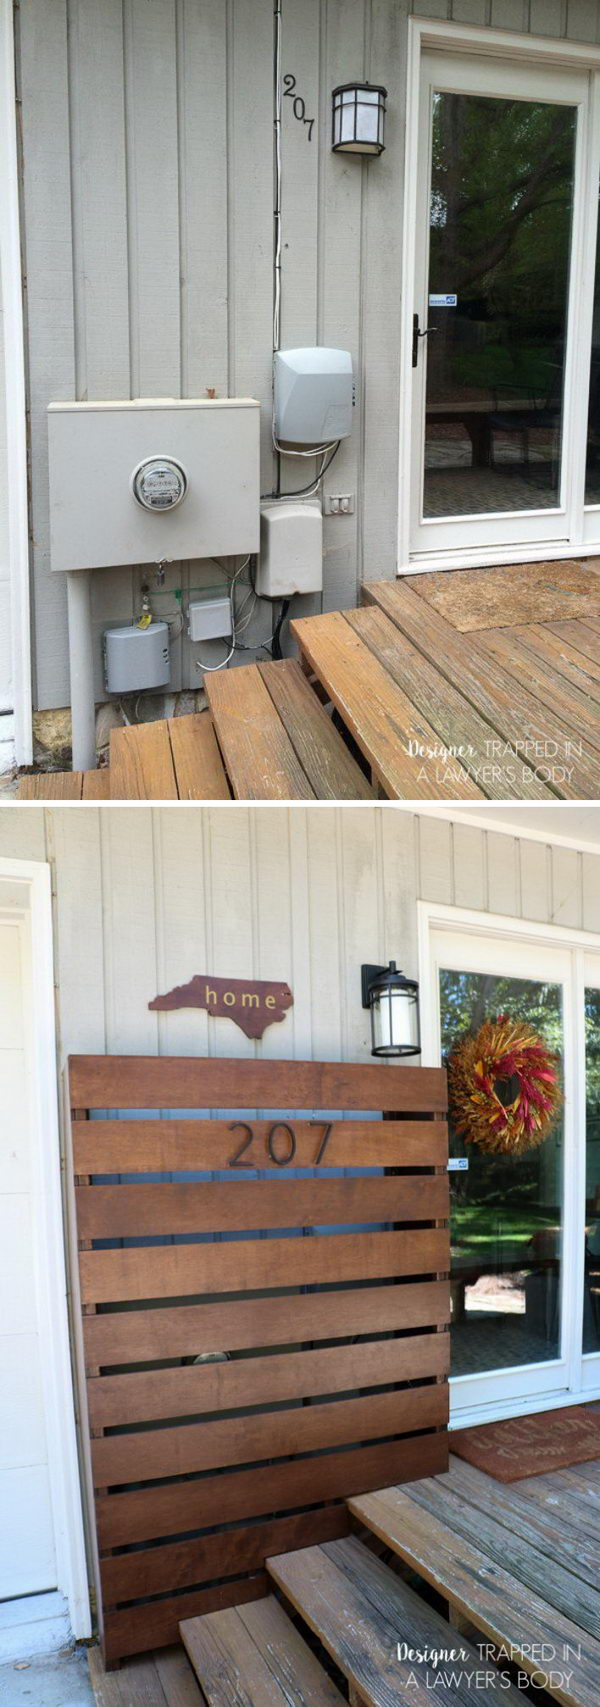 Accessorize a Giant Eye Sore with DIY Rustic Box Cover.